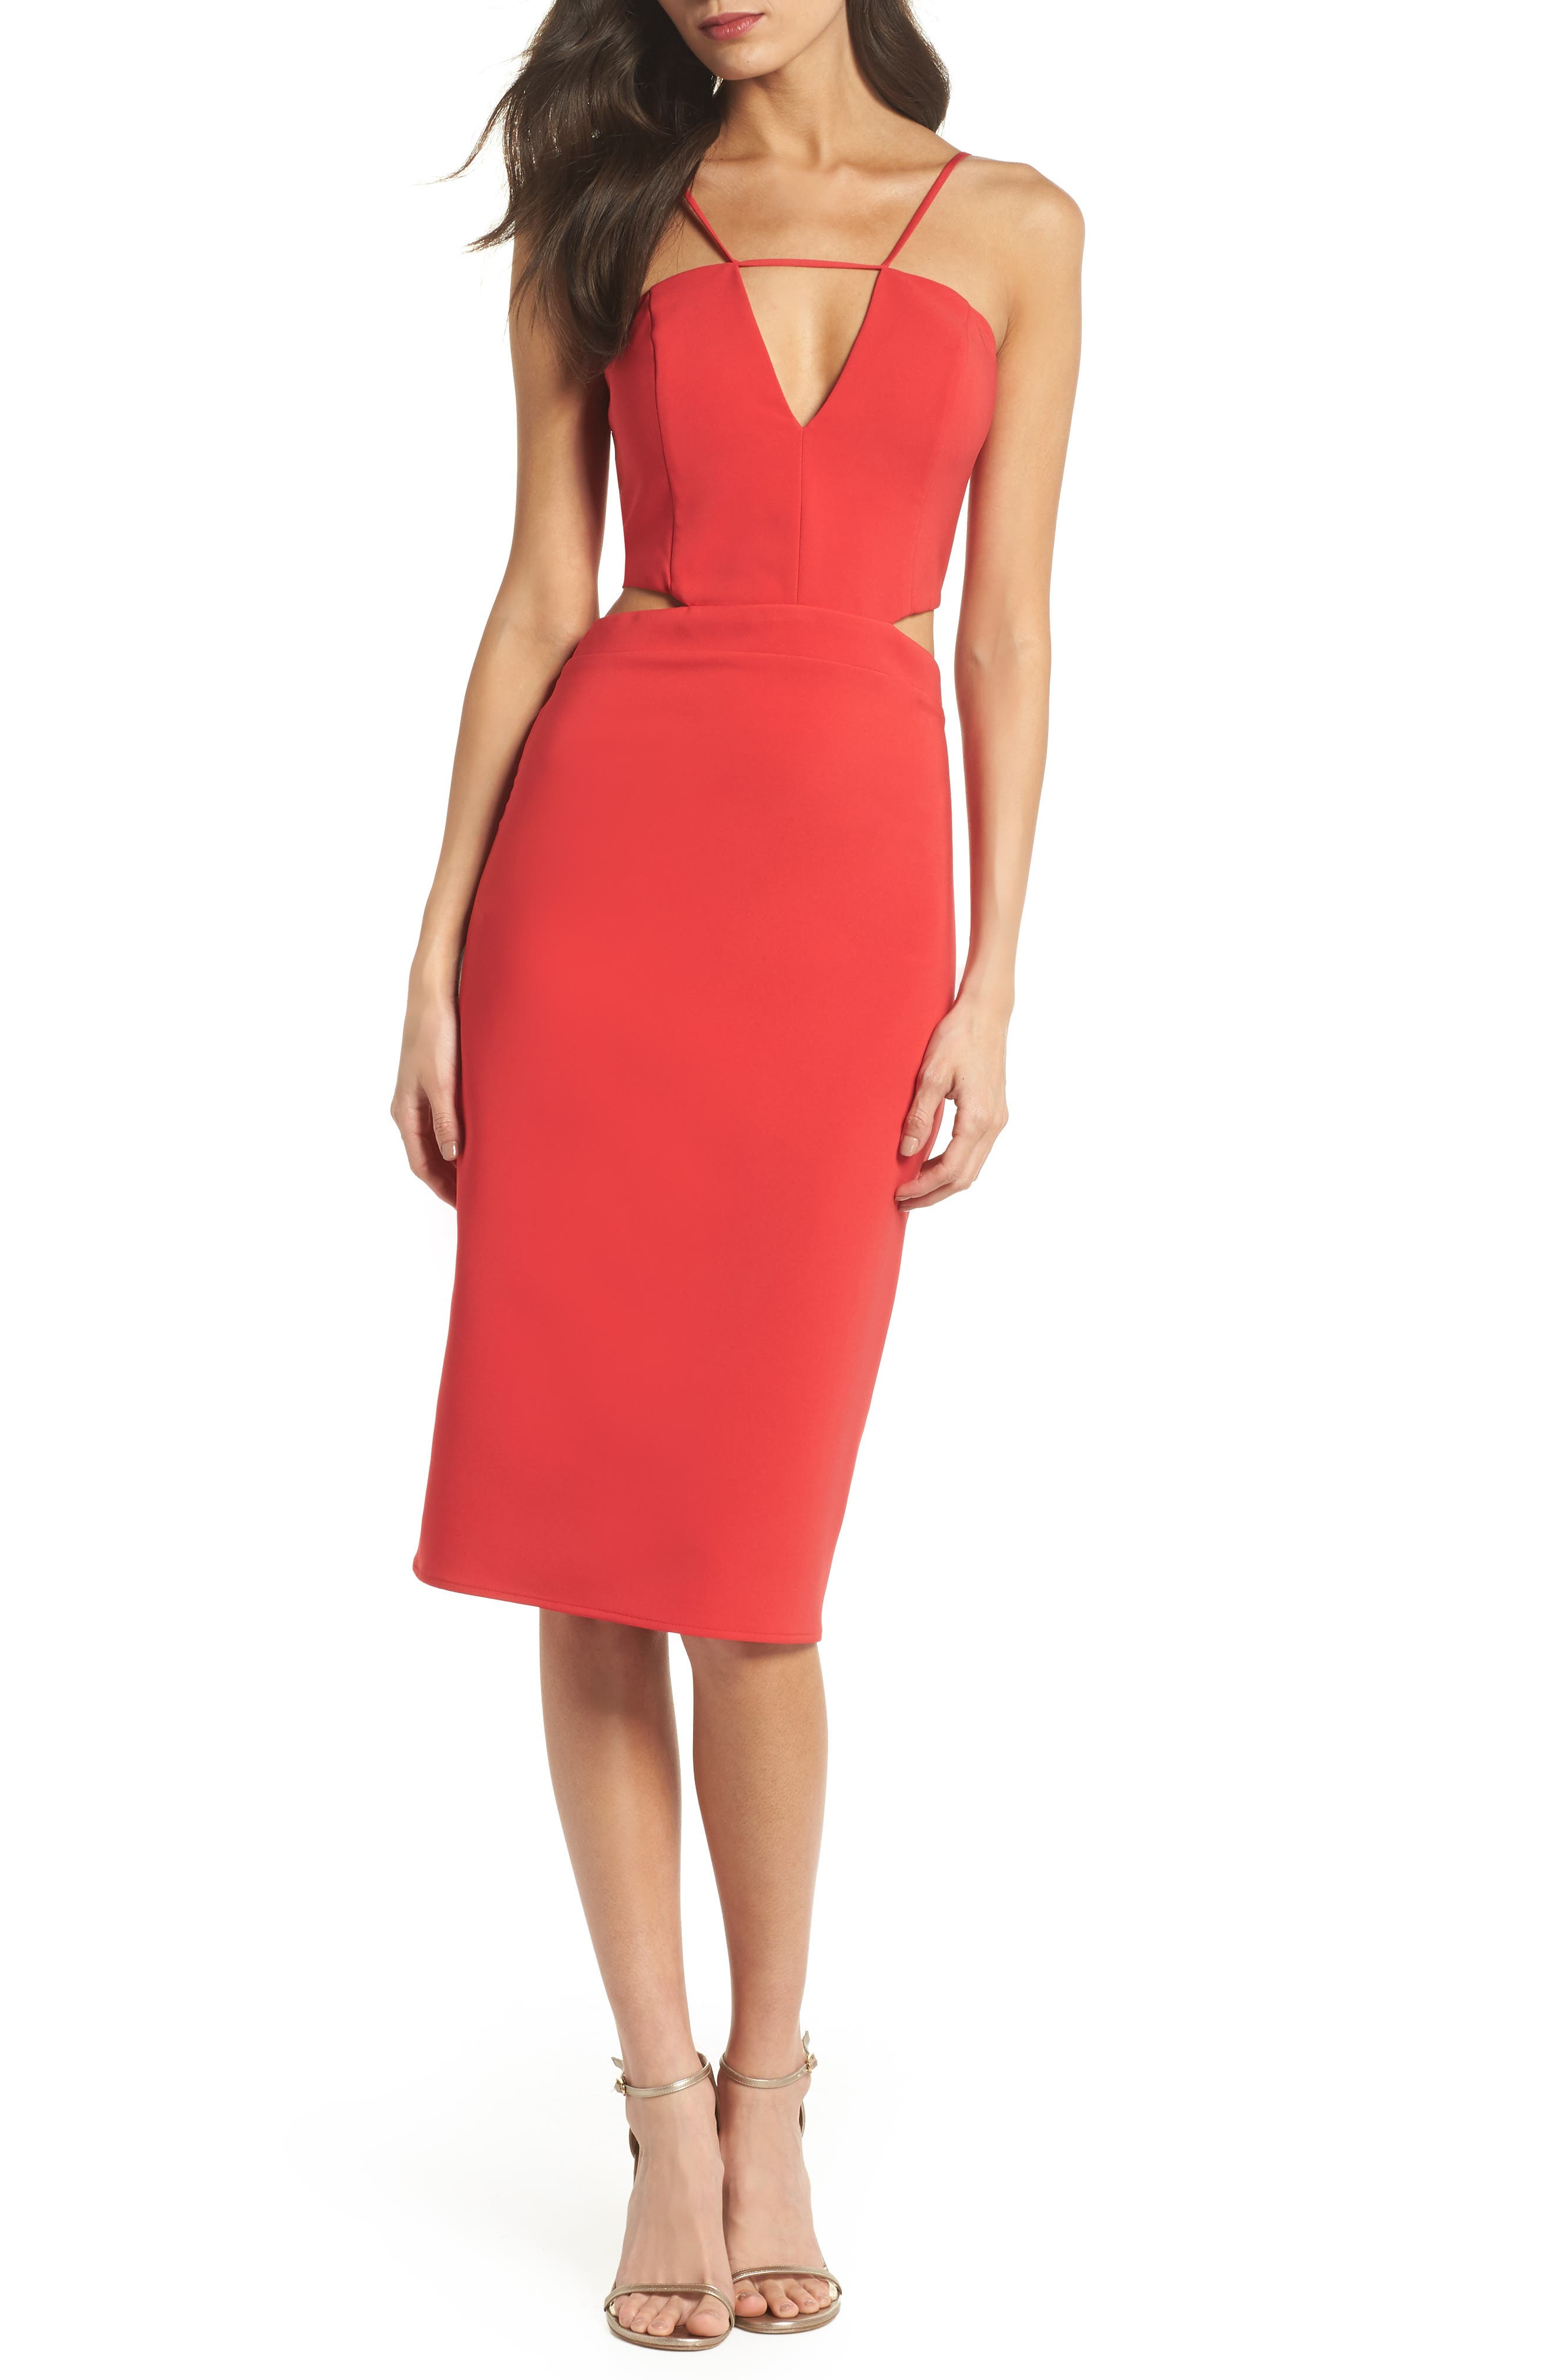 Maria Bianca Nero Melani Strappy Cutout Dress